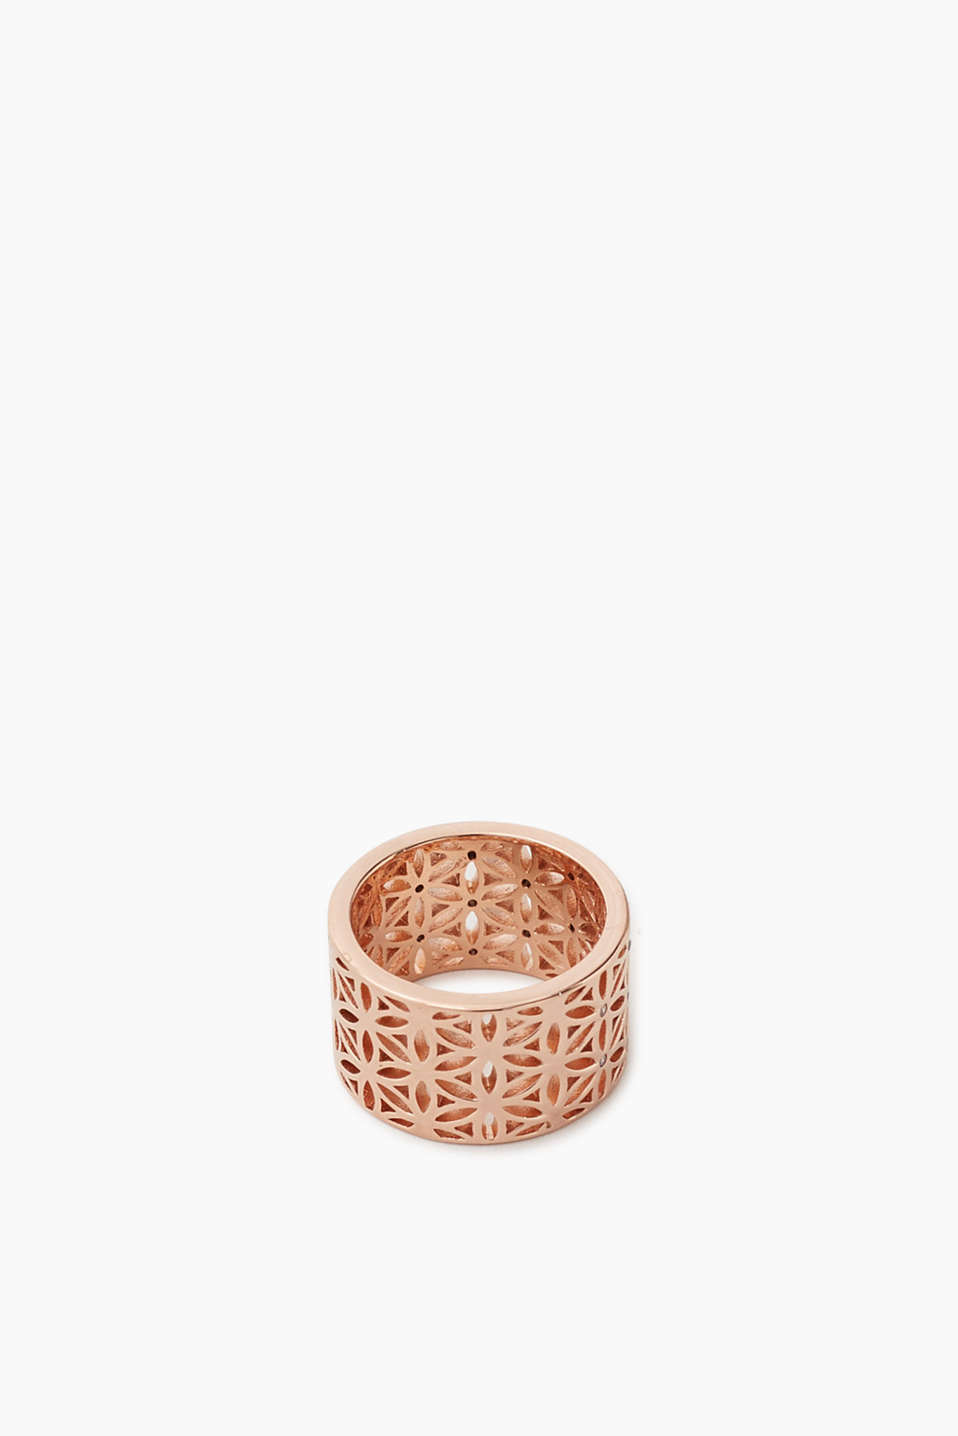 Metal ring with rose gold plating, flower ornament and white stone, width approx. 13 mm